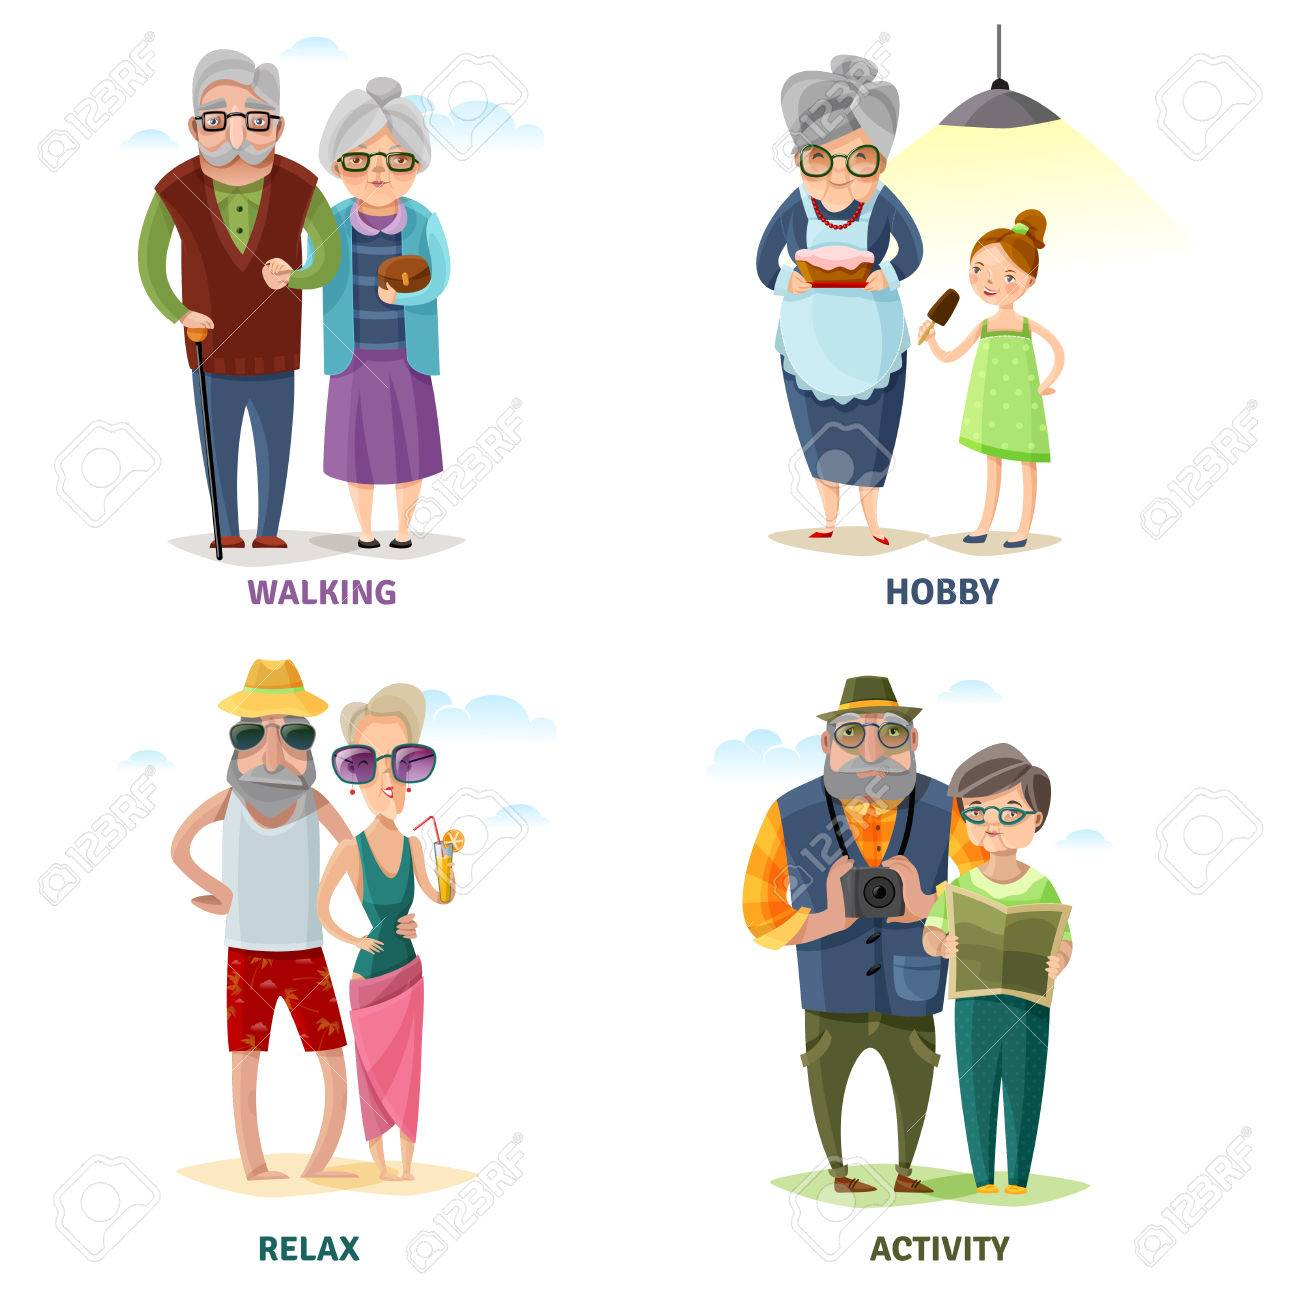 Charmant Old People Cartoon Collection In Different Activities And Situations  Isolated Vector Illustration Stock Vector   67285441